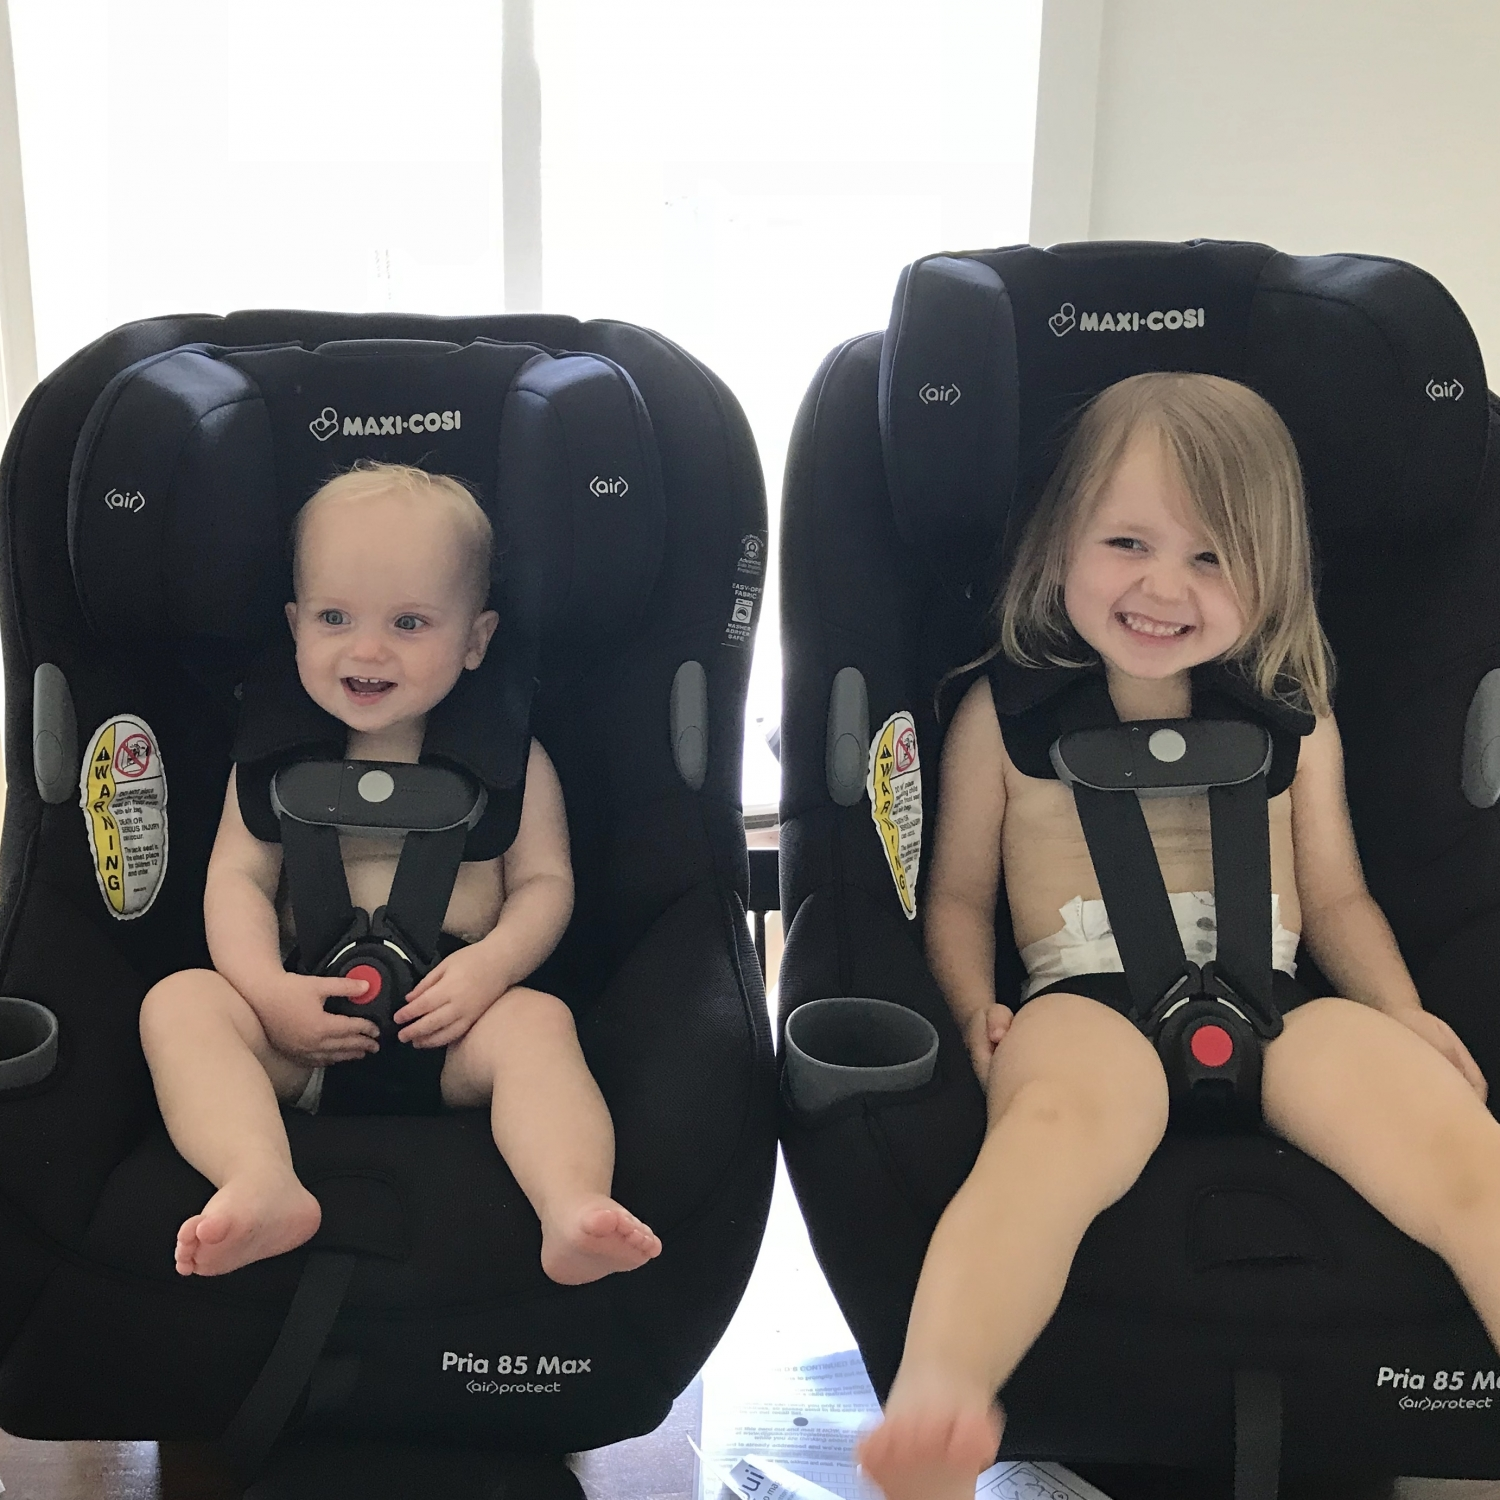 Of Car Seats Over The Years And This Is Our Favorite So Far Its Perfect For One Year Old 3 Cup Holder A Nice Bonus